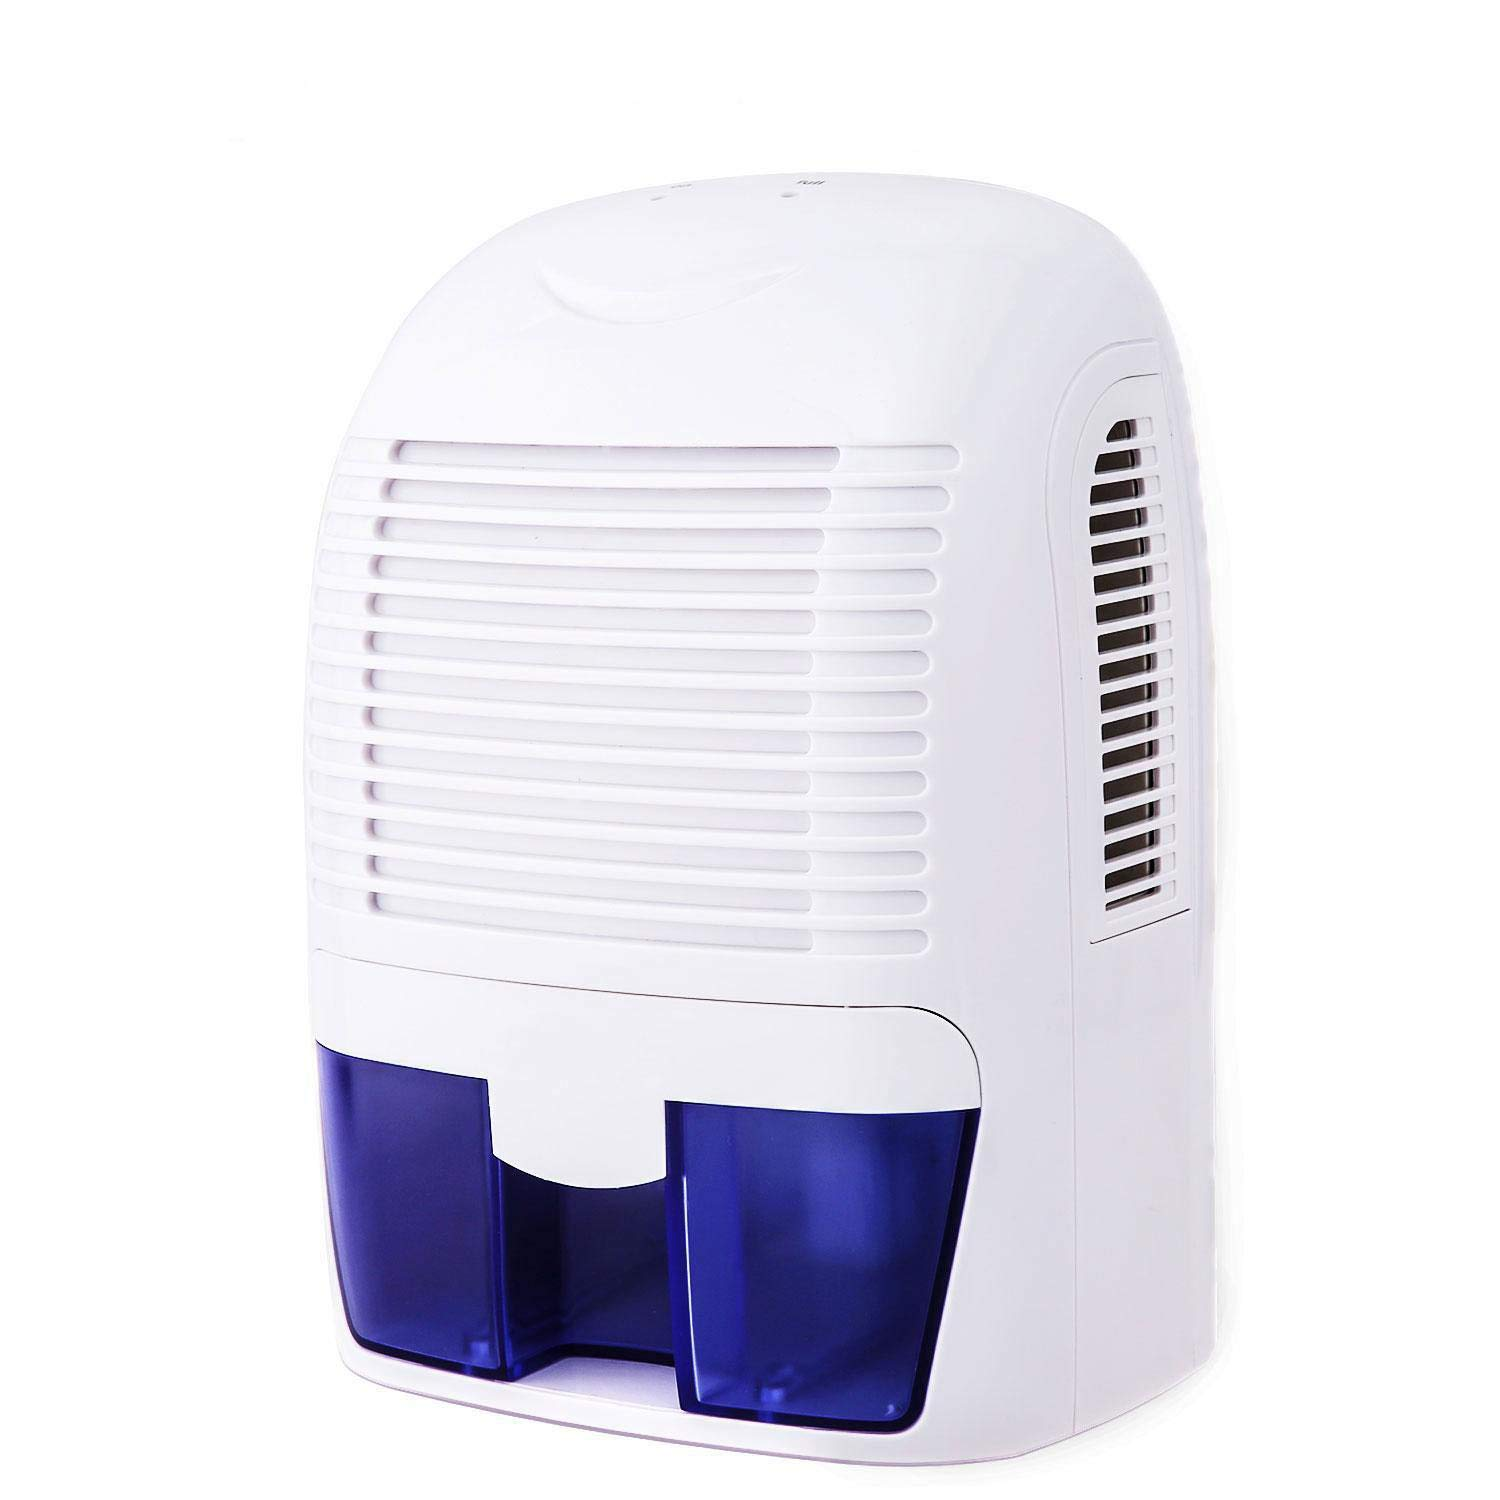 Leoneva Premium Electric Mini Quiet Safe Dehumidifier, Portable Compact for Damp Air Household, Home, Kitchen, Office, Bedroom, Garage, 1500ML Capacity, 2200 Cubic Feet